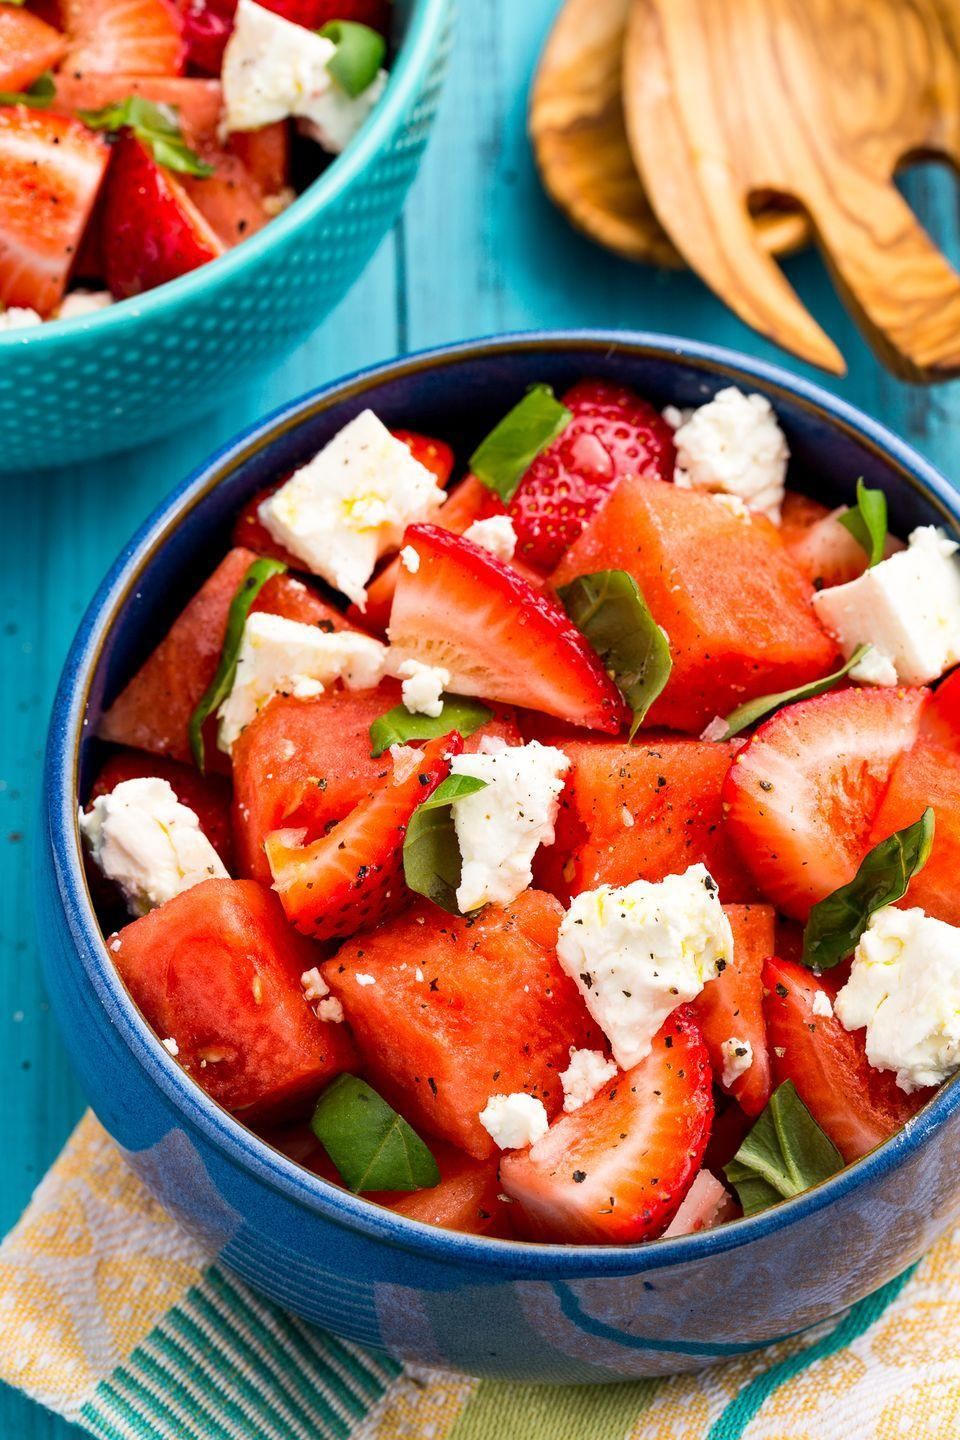 """<p>For when tomatoes just won't cut it, get creative with your caprese by adding strawberries and watermelon.</p><p>Get the recipe from <a href=""""https://www.delish.com/cooking/recipe-ideas/recipes/a47361/watermelon-strawberry-caprese-salad-recipe/"""" rel=""""nofollow noopener"""" target=""""_blank"""" data-ylk=""""slk:Delish"""" class=""""link rapid-noclick-resp"""">Delish</a>.</p>"""